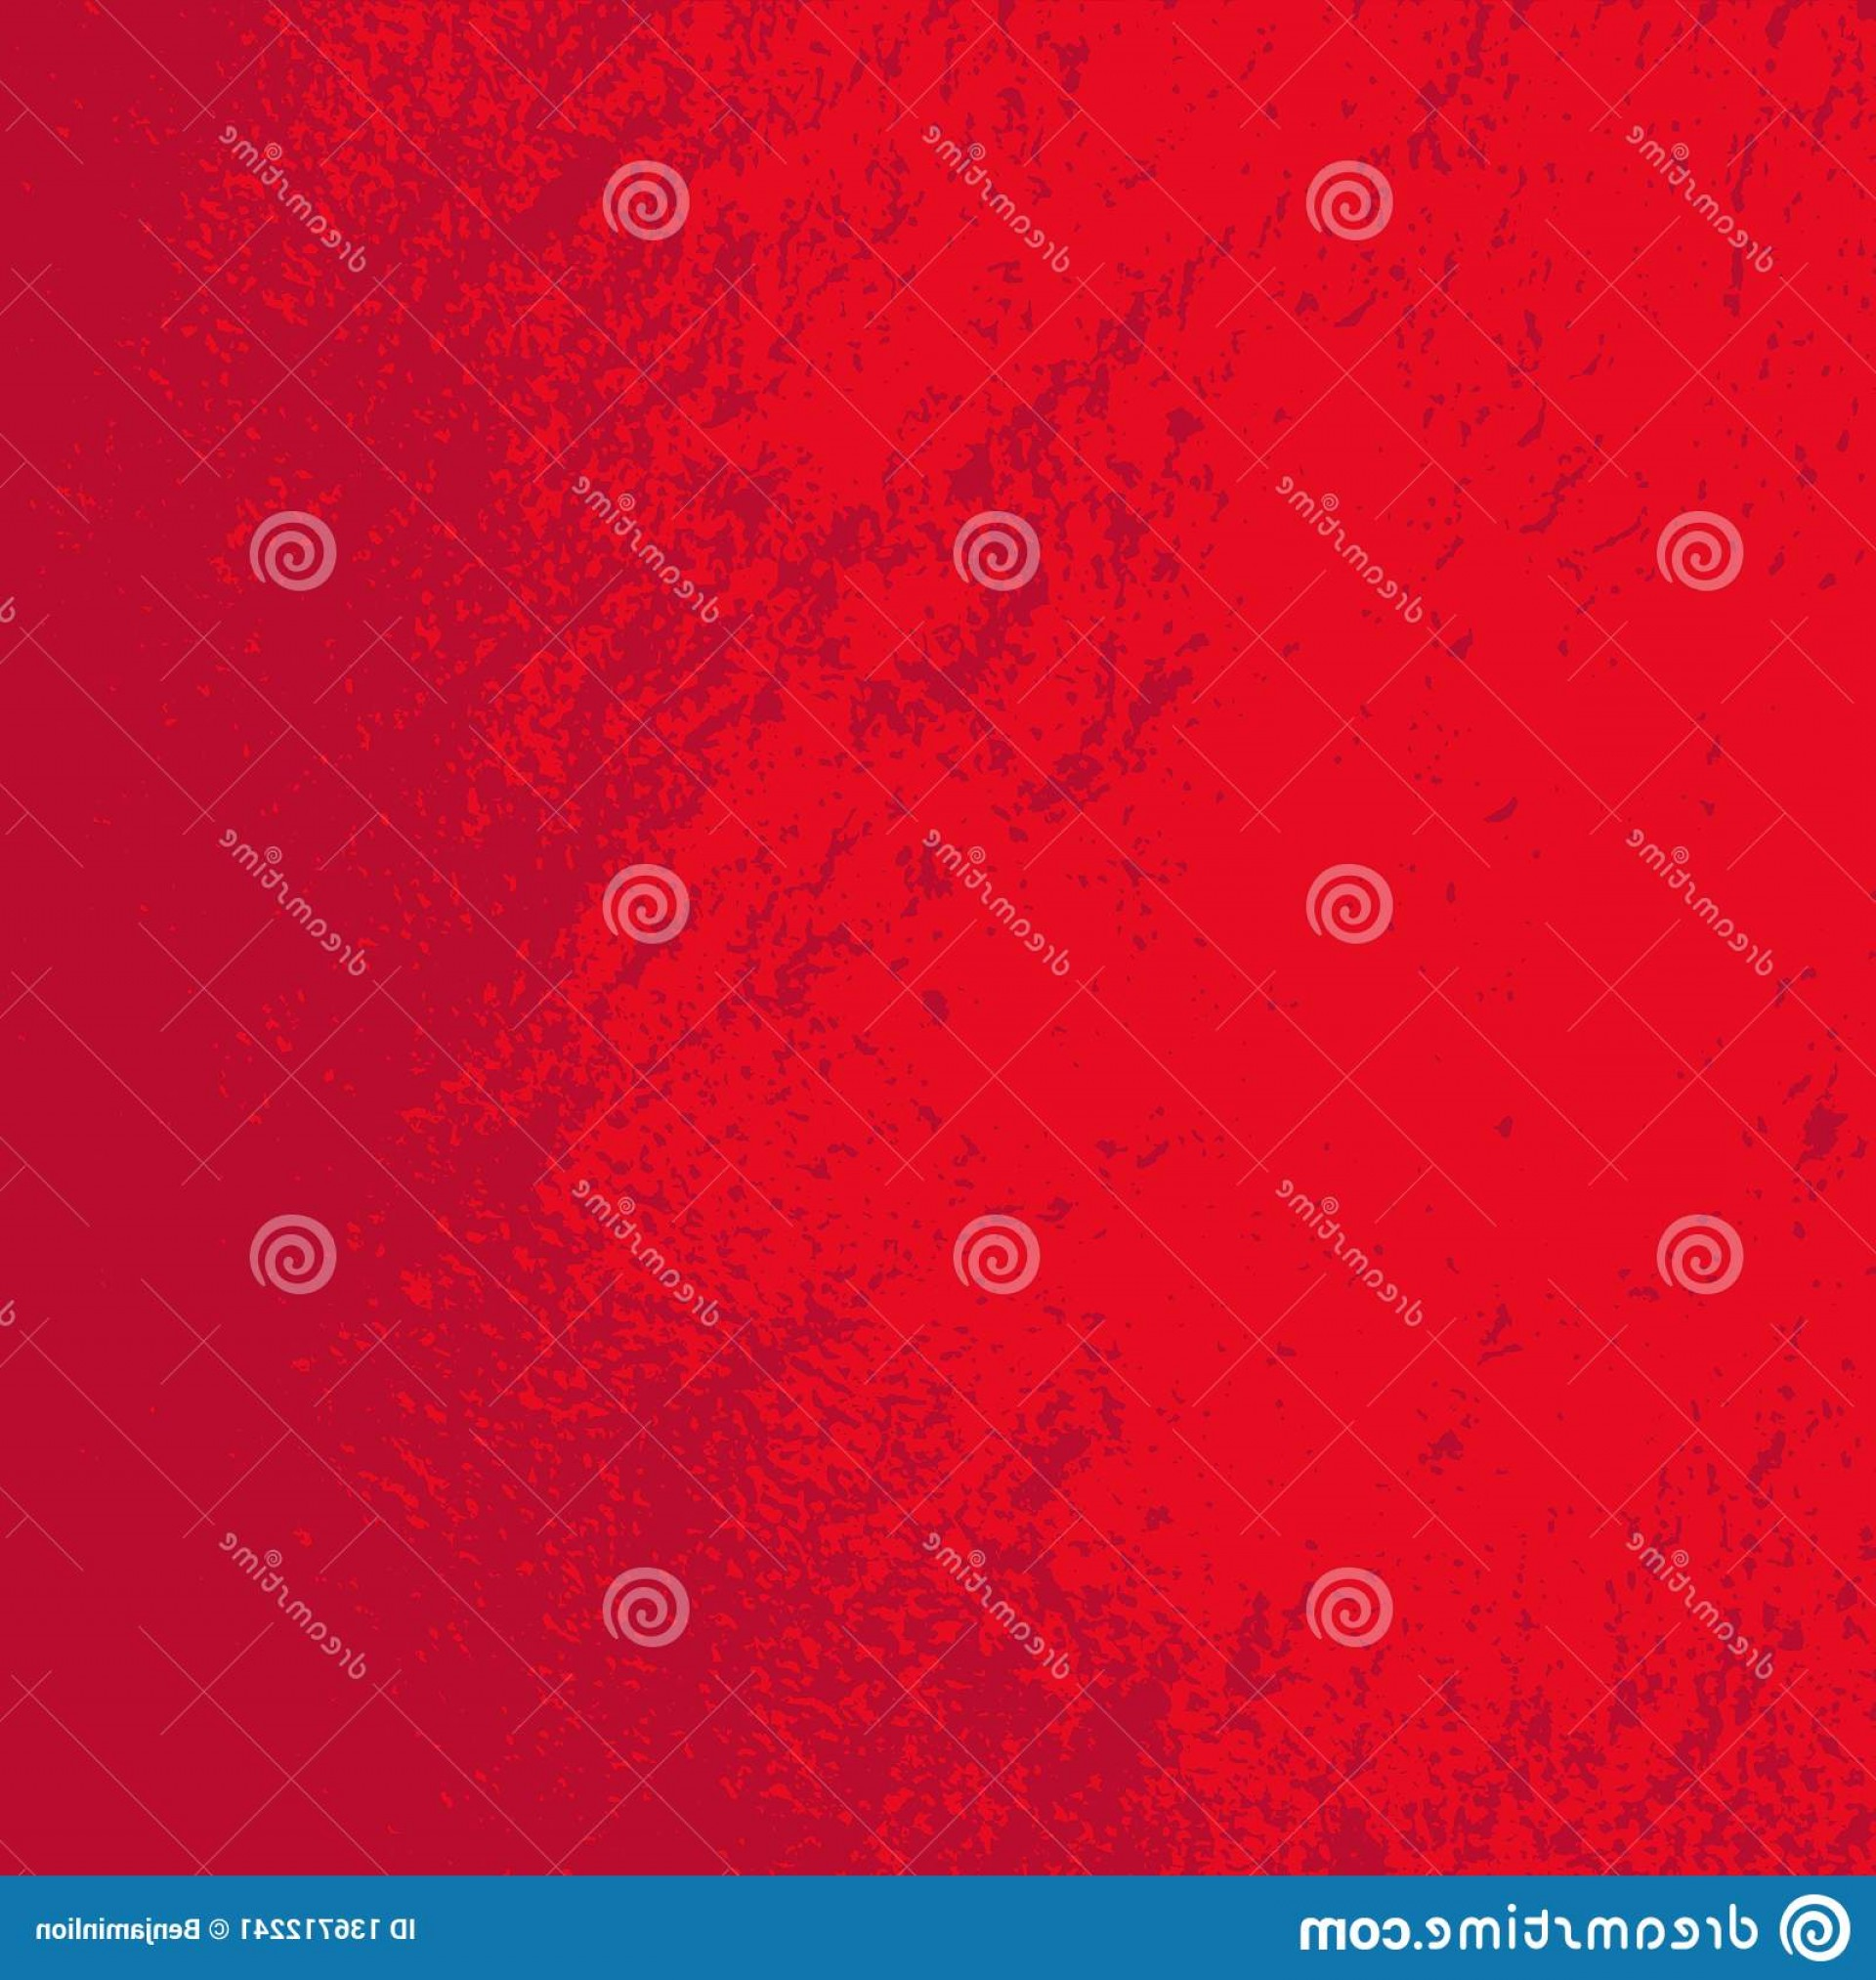 Distressed Red Background Vector: Red Grunge Background Grunge Red Texture Your Design Empty Distressed Background Eps Vector Image